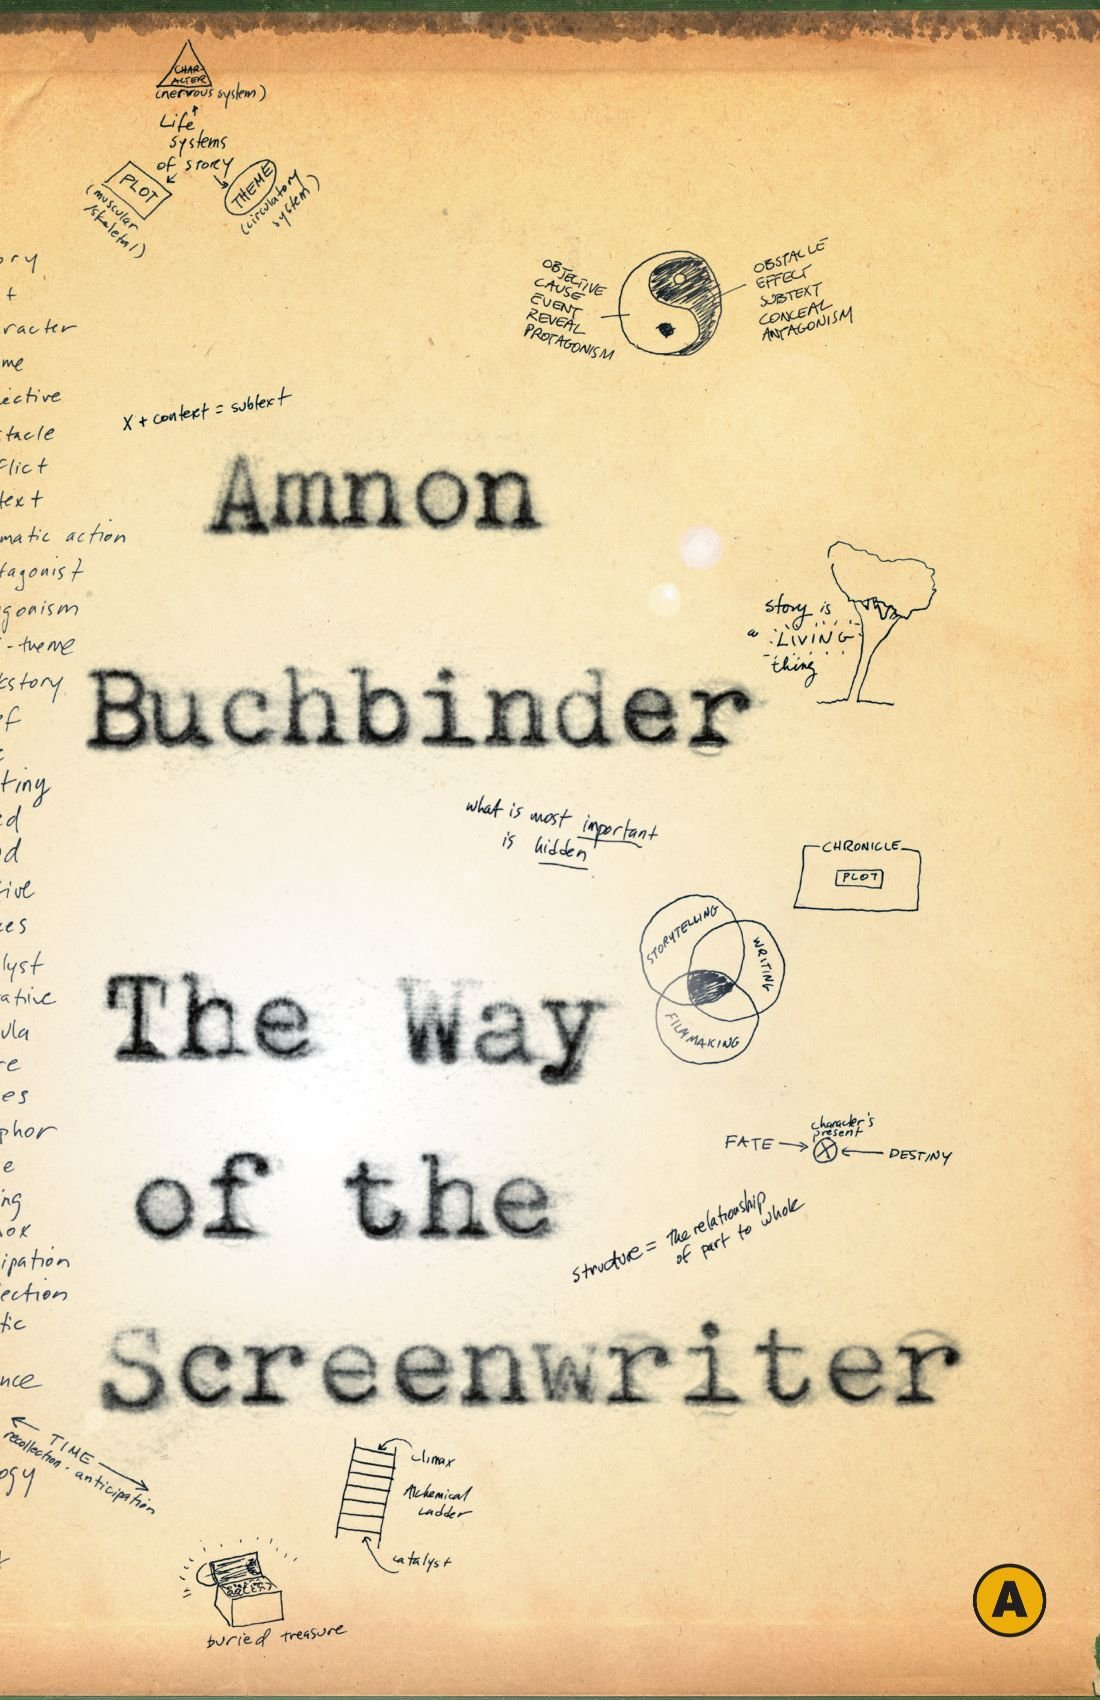 The way of the screenwriter amnon buchbinder 9780887847370 the way of the screenwriter amnon buchbinder 9780887847370 amazon books fandeluxe Image collections